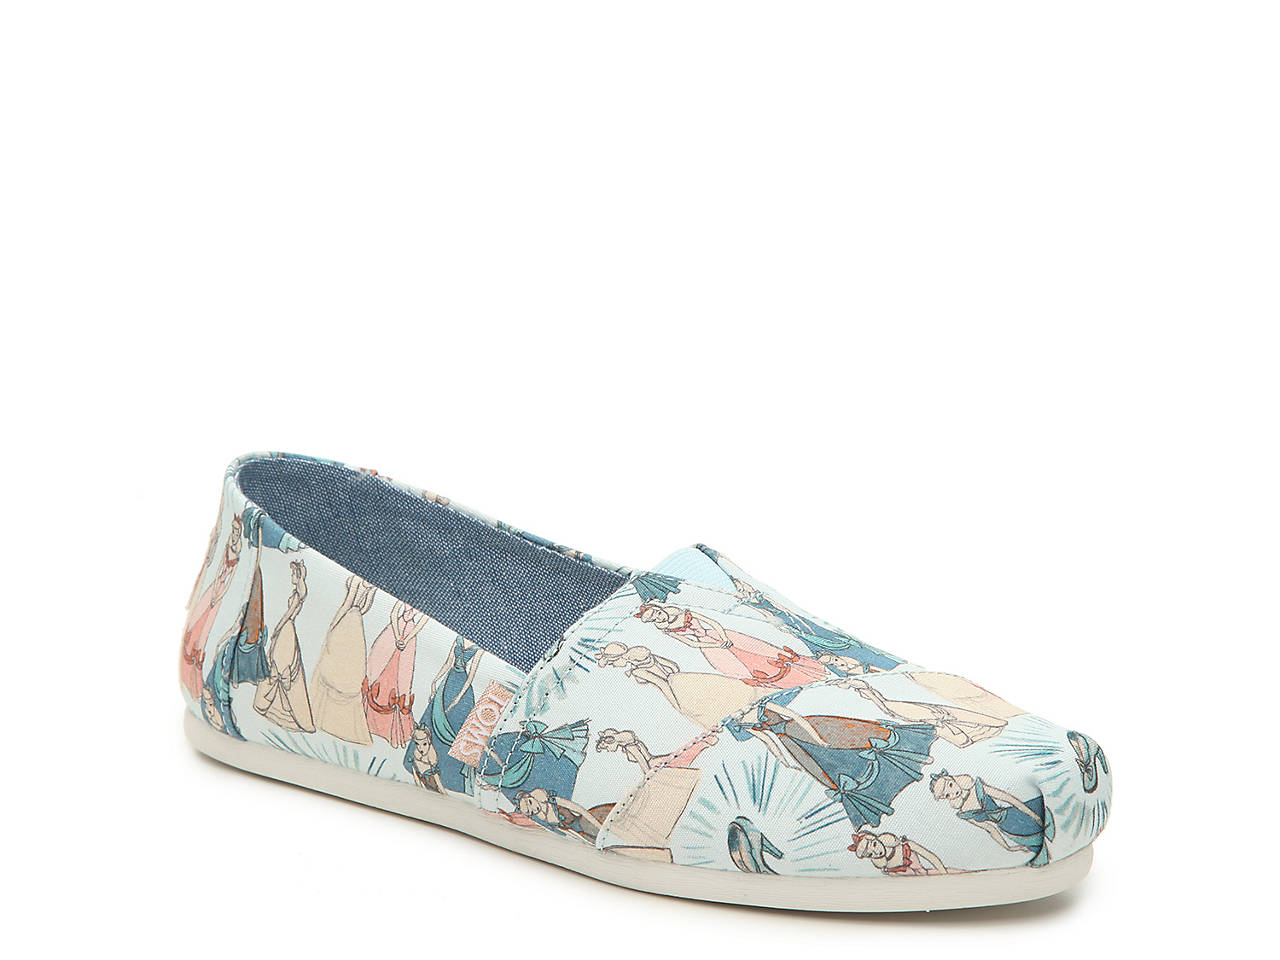 091c71e2475e TOMS Cinderella Classic Slip-On Women s Shoes